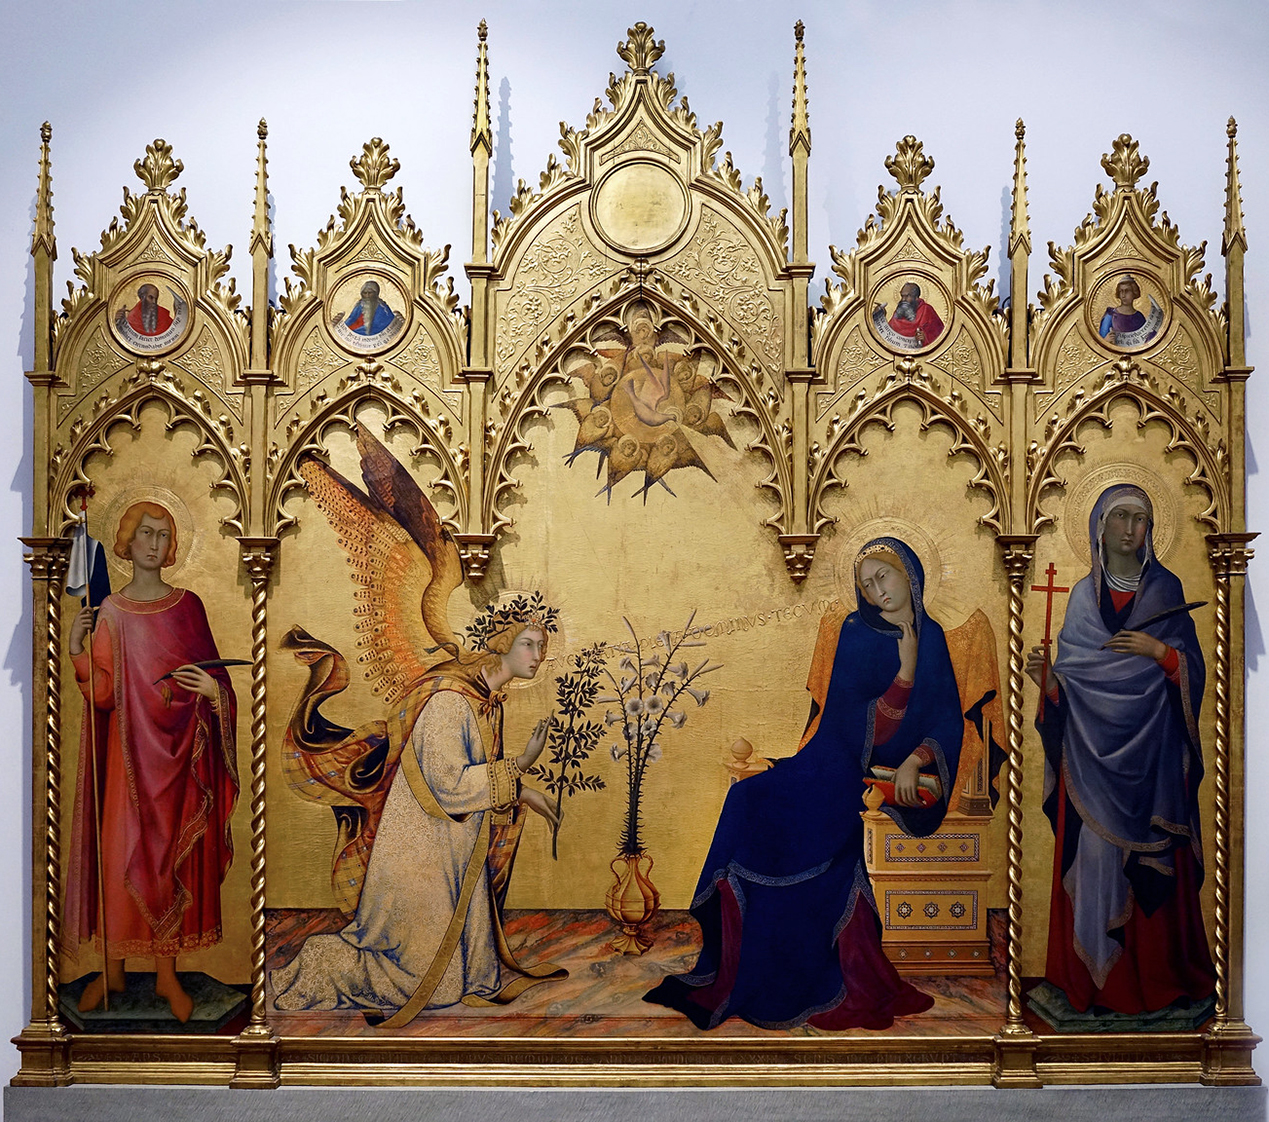 Simone Martini, The Annunciation, 1333, tempera on panel, 72 1/2 x 82 5/8 inches or 184 x 210 cm (Uffizi, Florence)